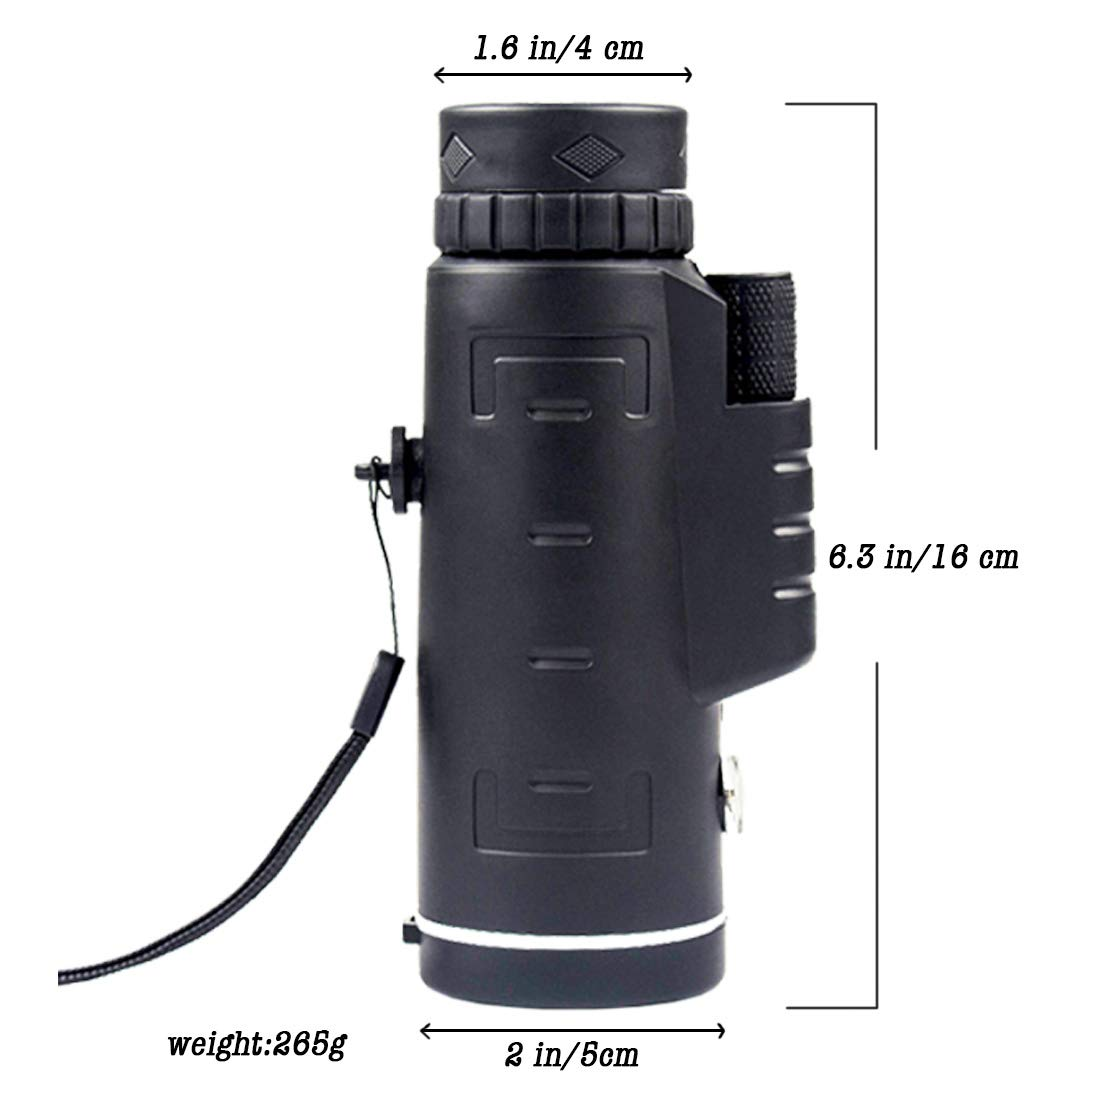 Monocular Telescope Lightweight Portable Design for Bird Watching Hunting Camping Hiking Travelling Sports Bak4 Prism Compass Monocular for Mobile Camera with Phone Photography Adapter and Tripod